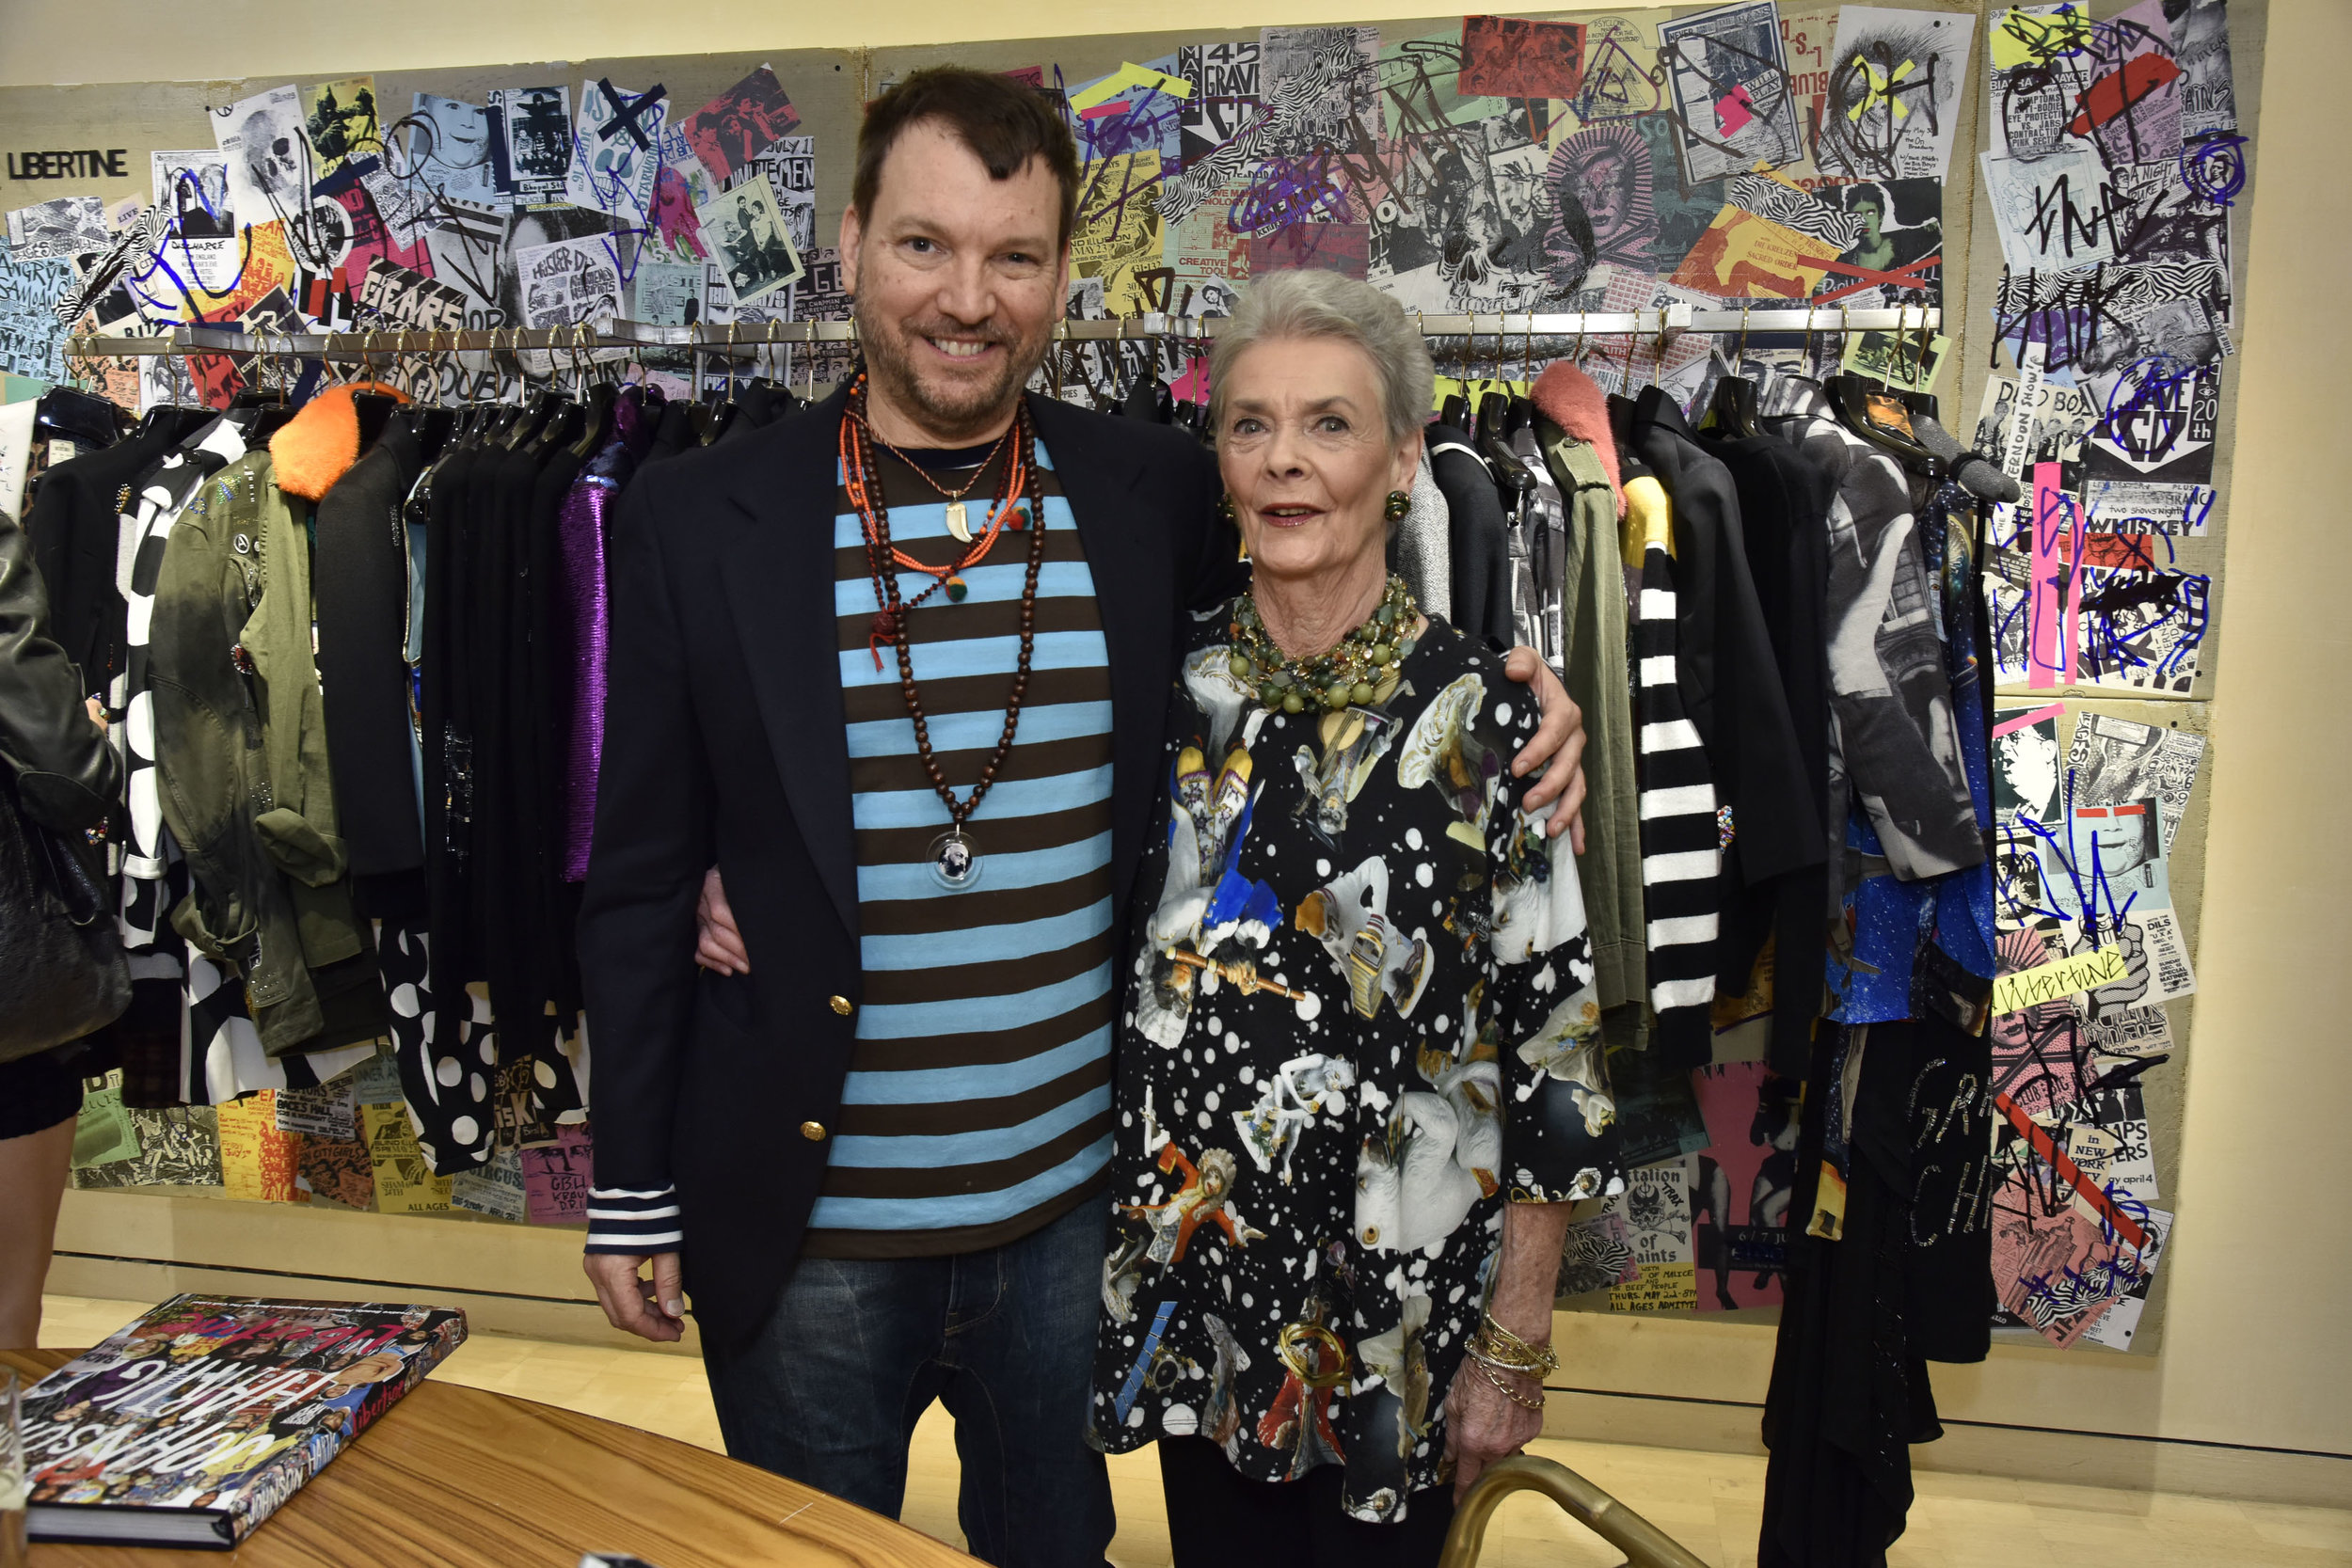 Betty Halbreich at Libertine book party 2015. All photos courtesy of Bergdorf Goodman.